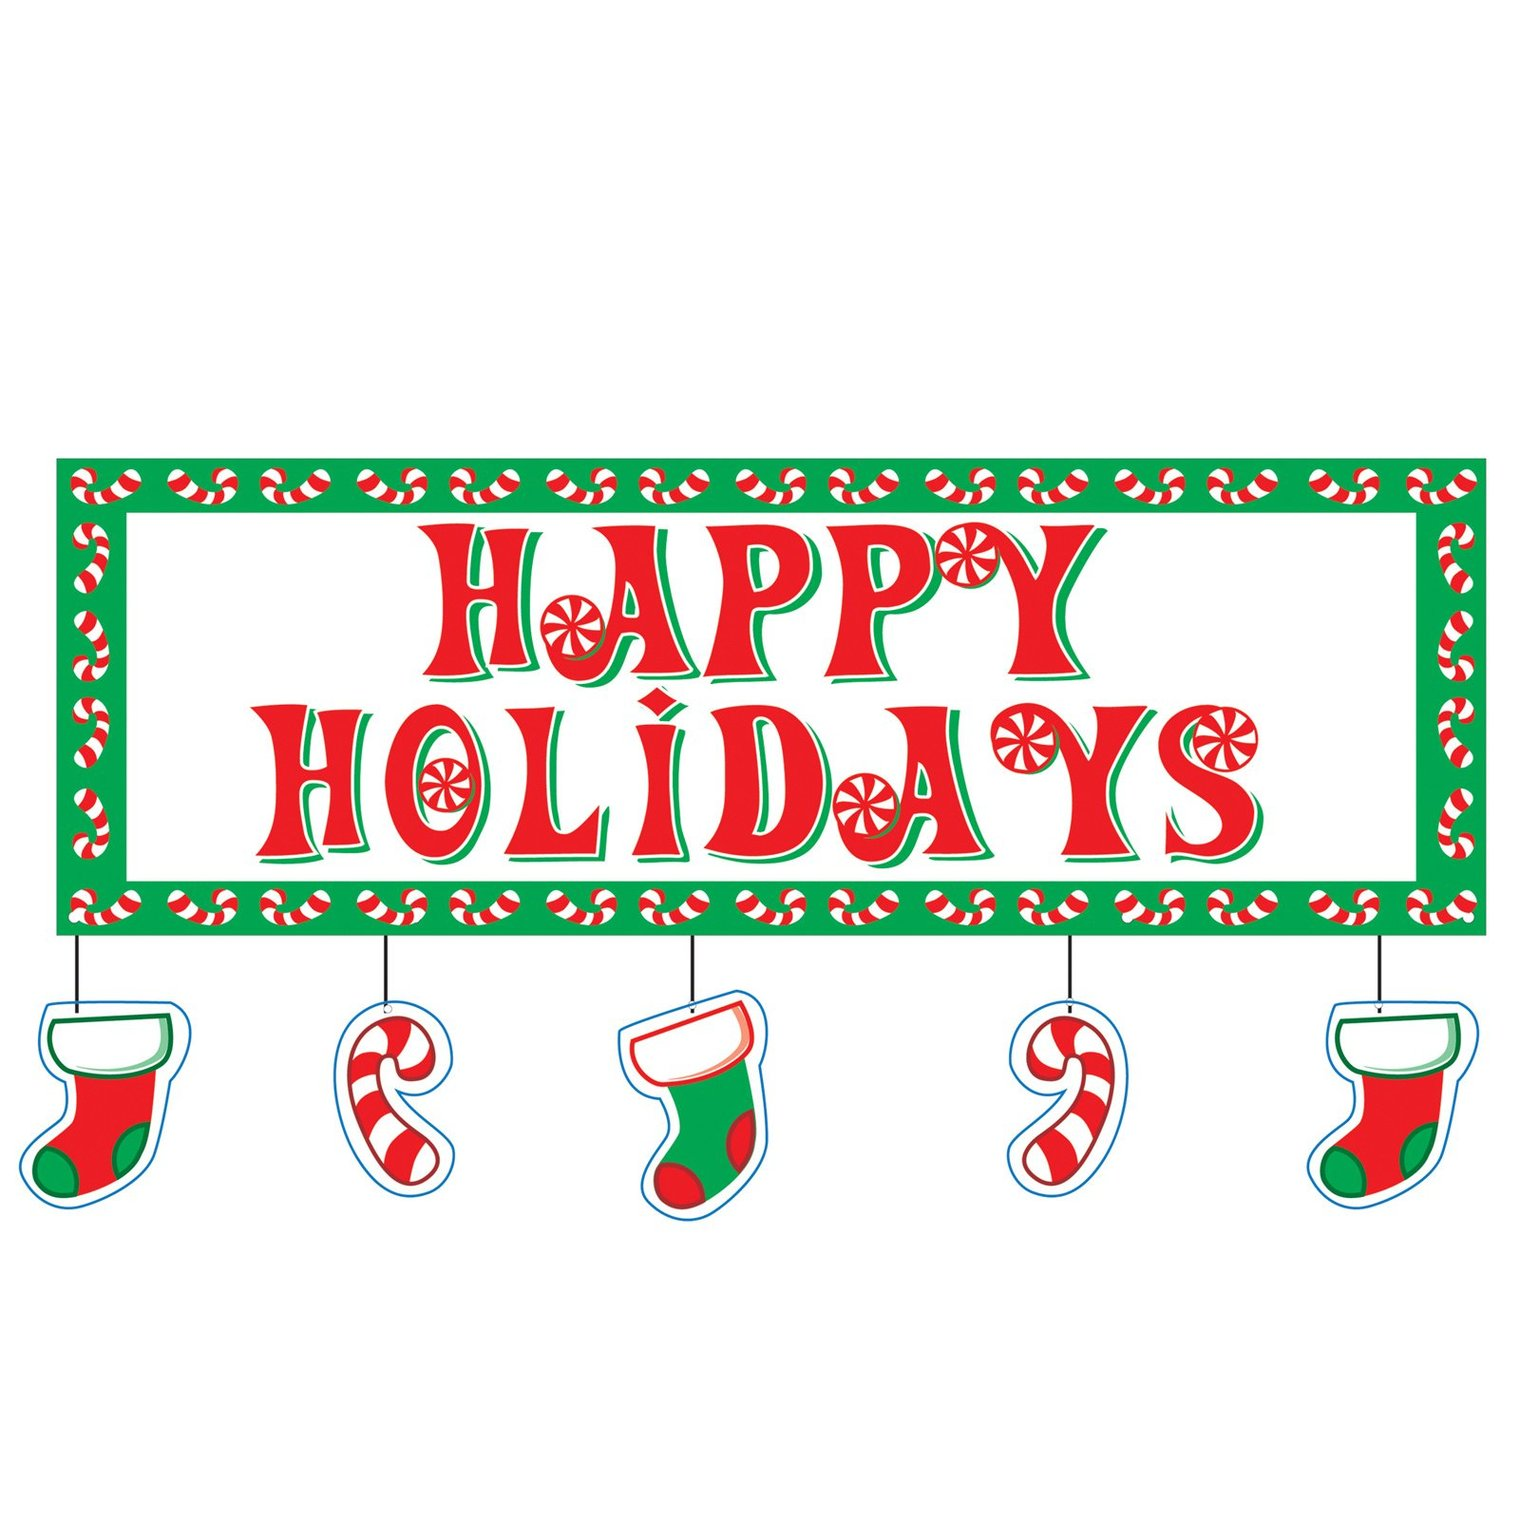 Holydays clipart holiday party Free Clip clipart Art Holiday